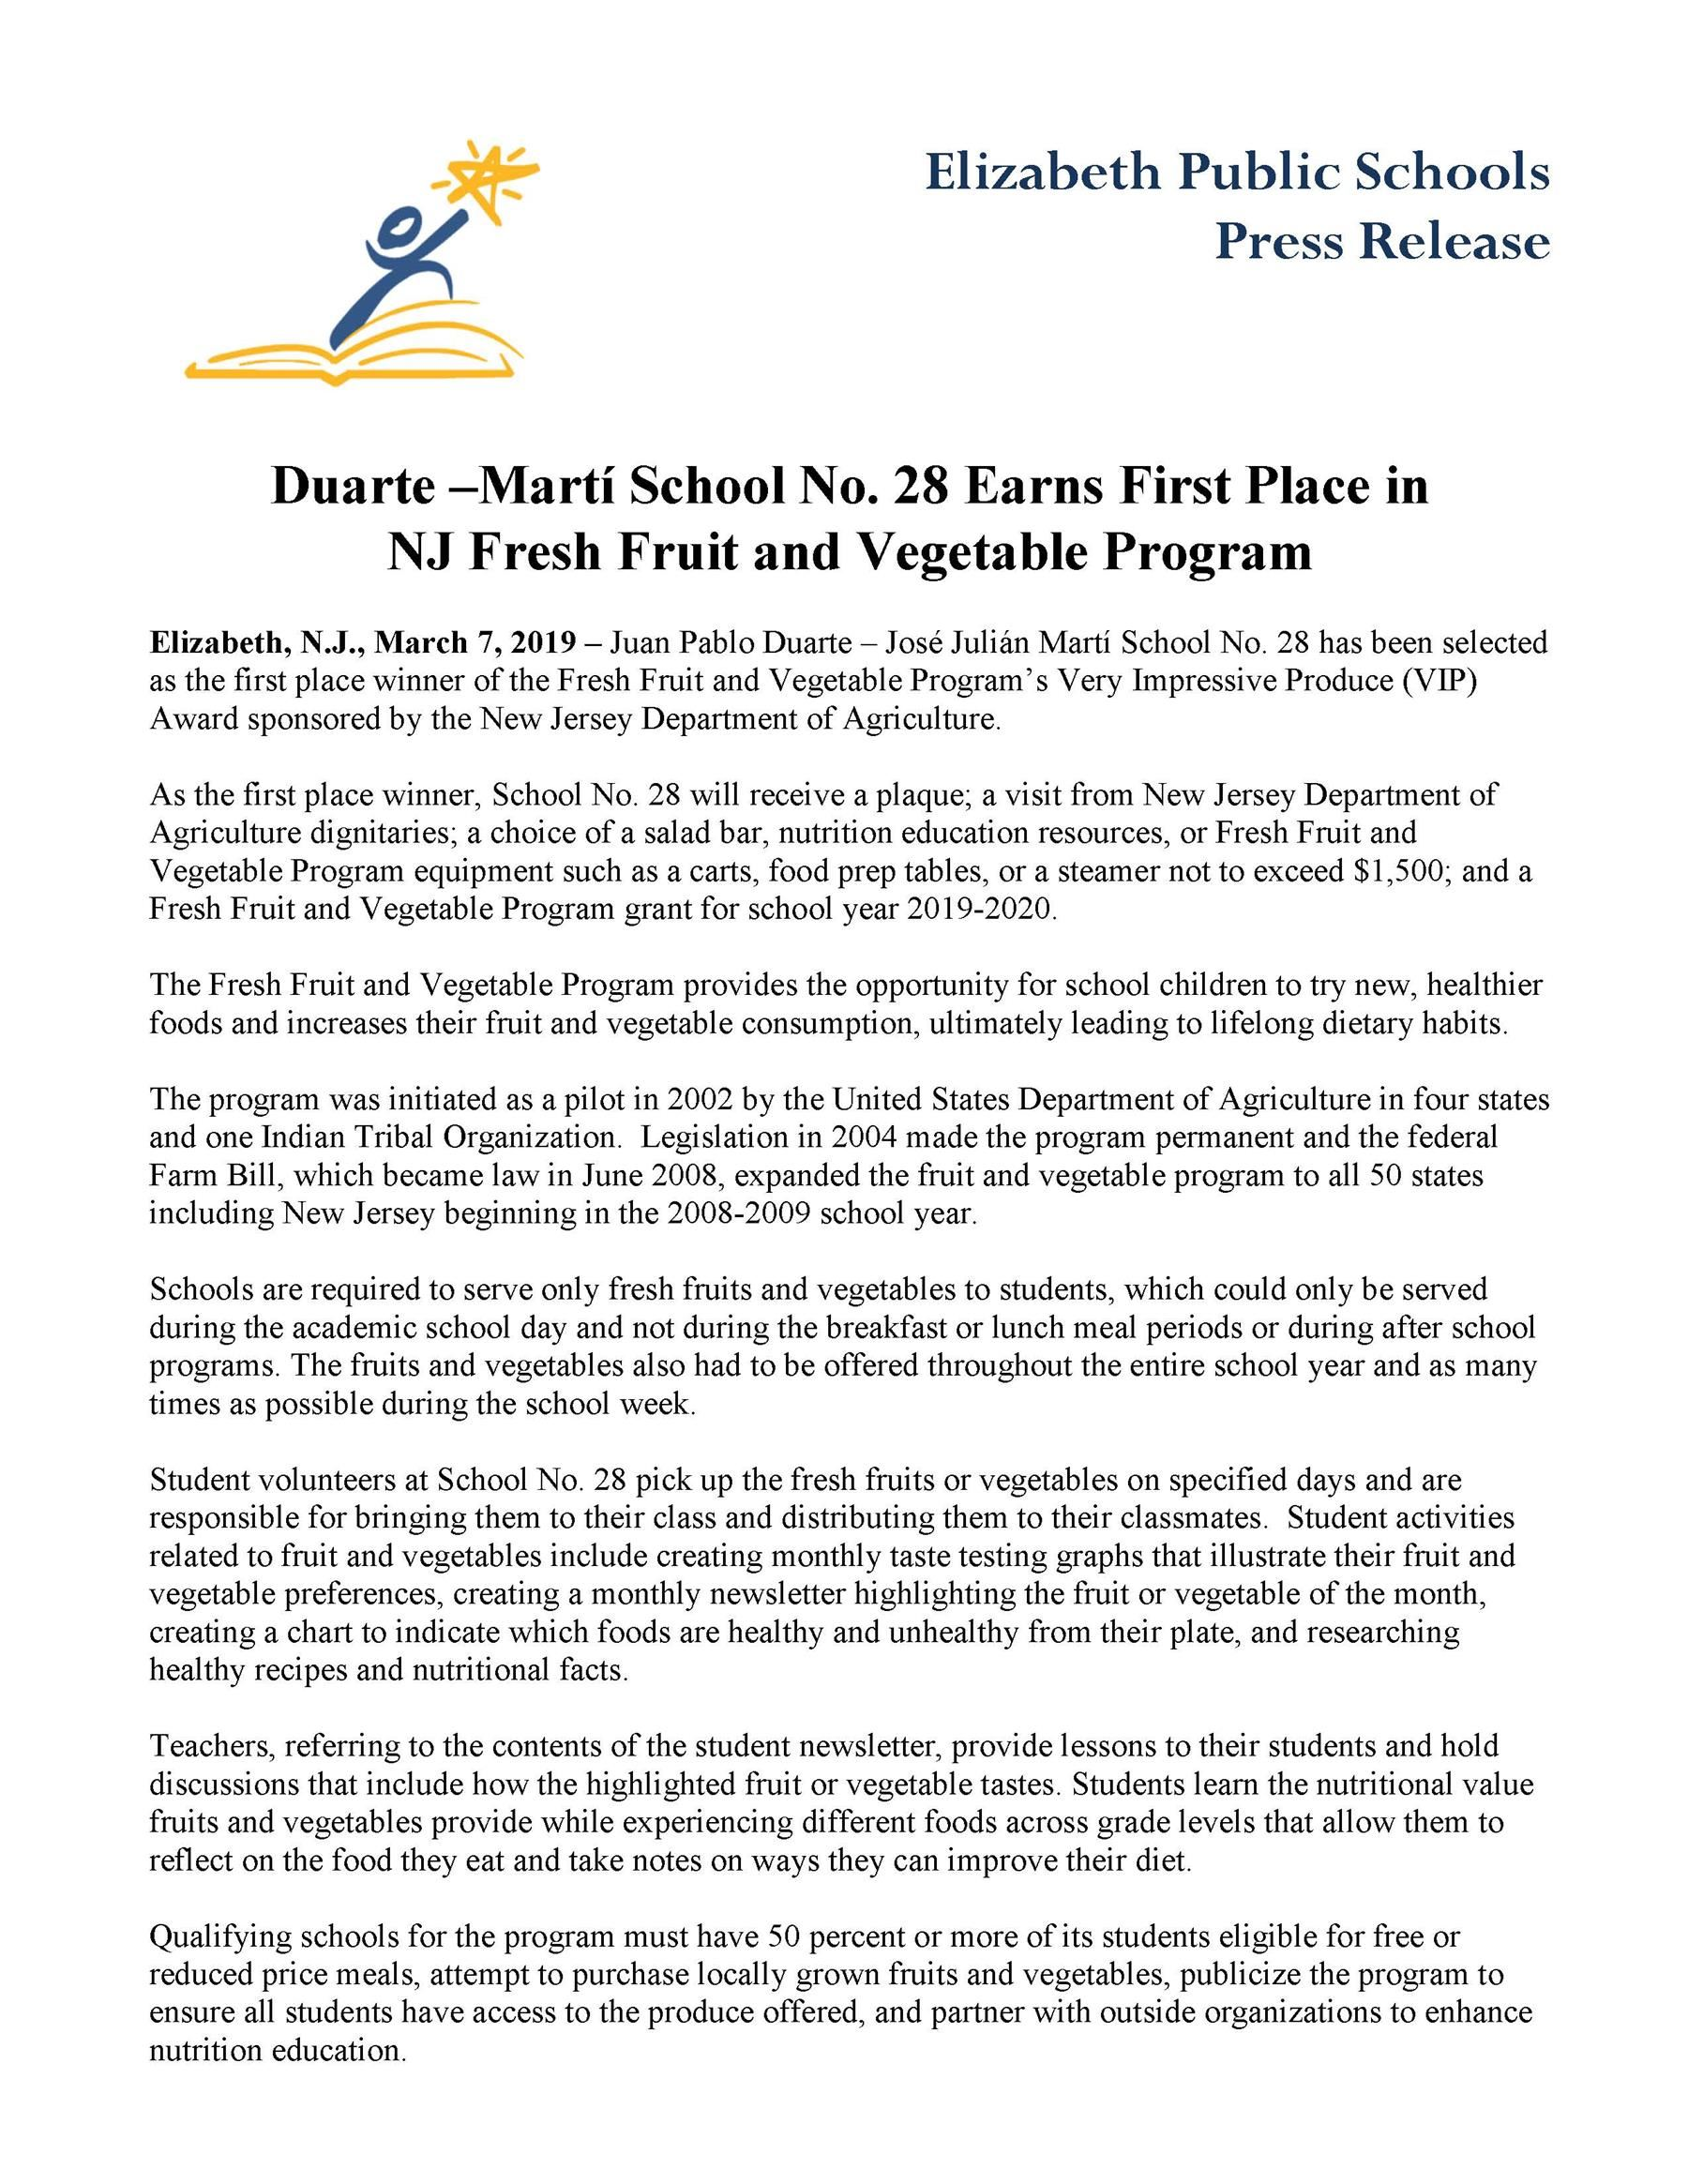 Duarte Martí School No 28 Earns First Place in NJ Fresh Fruit and Vegetable Program- 3-7-19